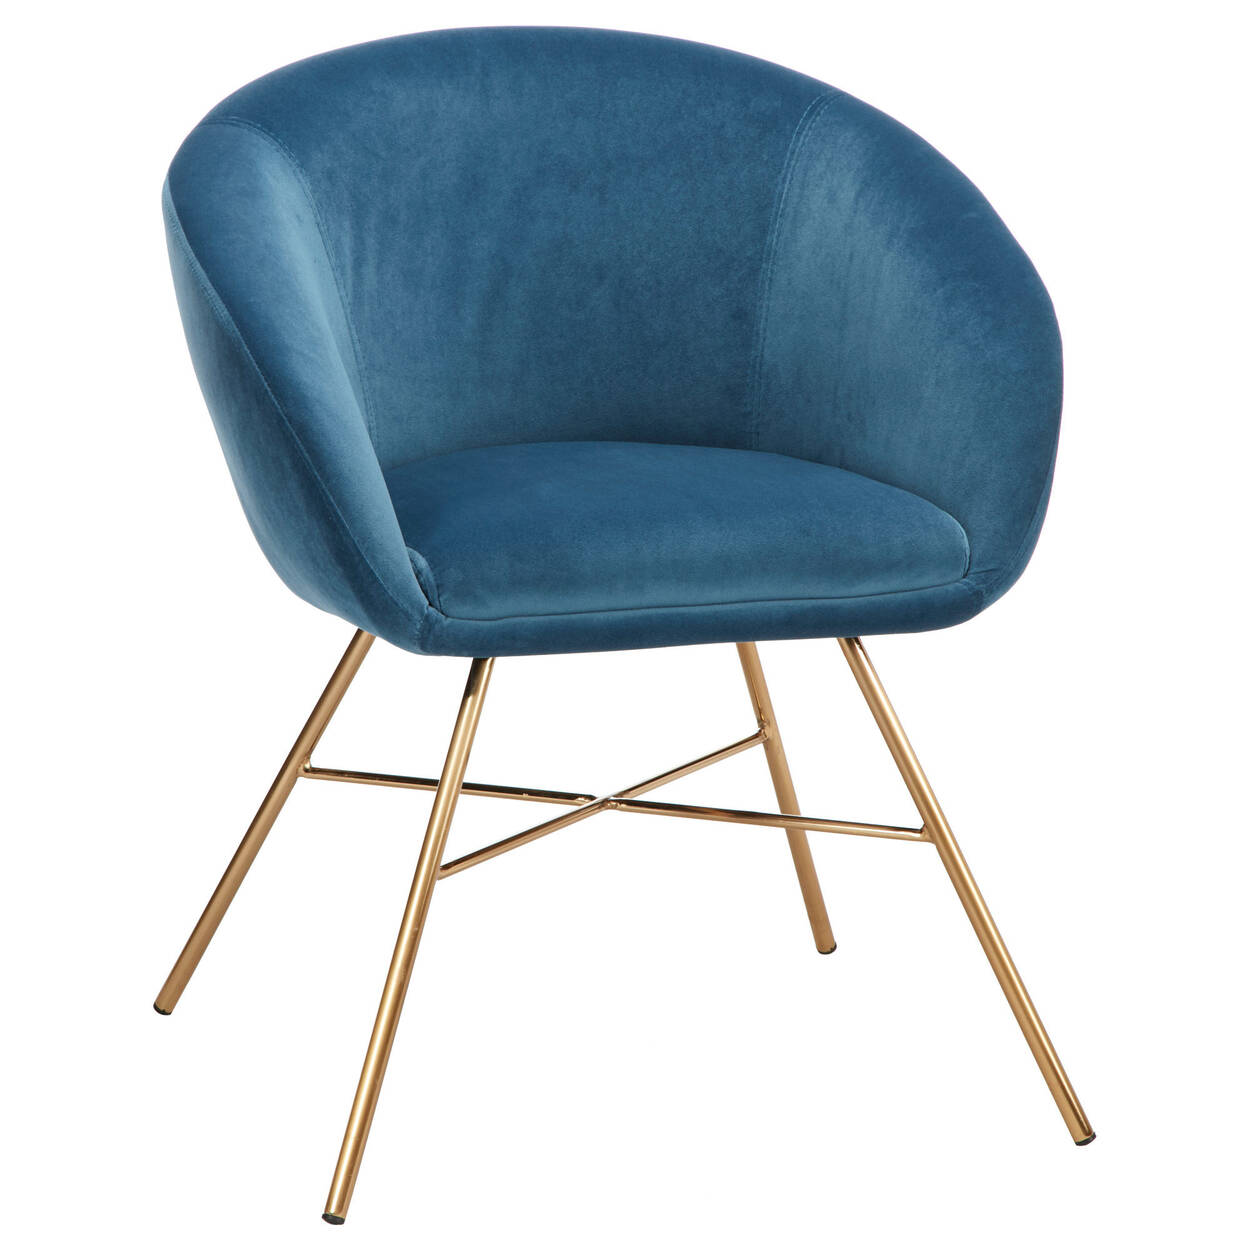 1081a50989 Velvet and Metal Lounge Chair | Bouclair.com